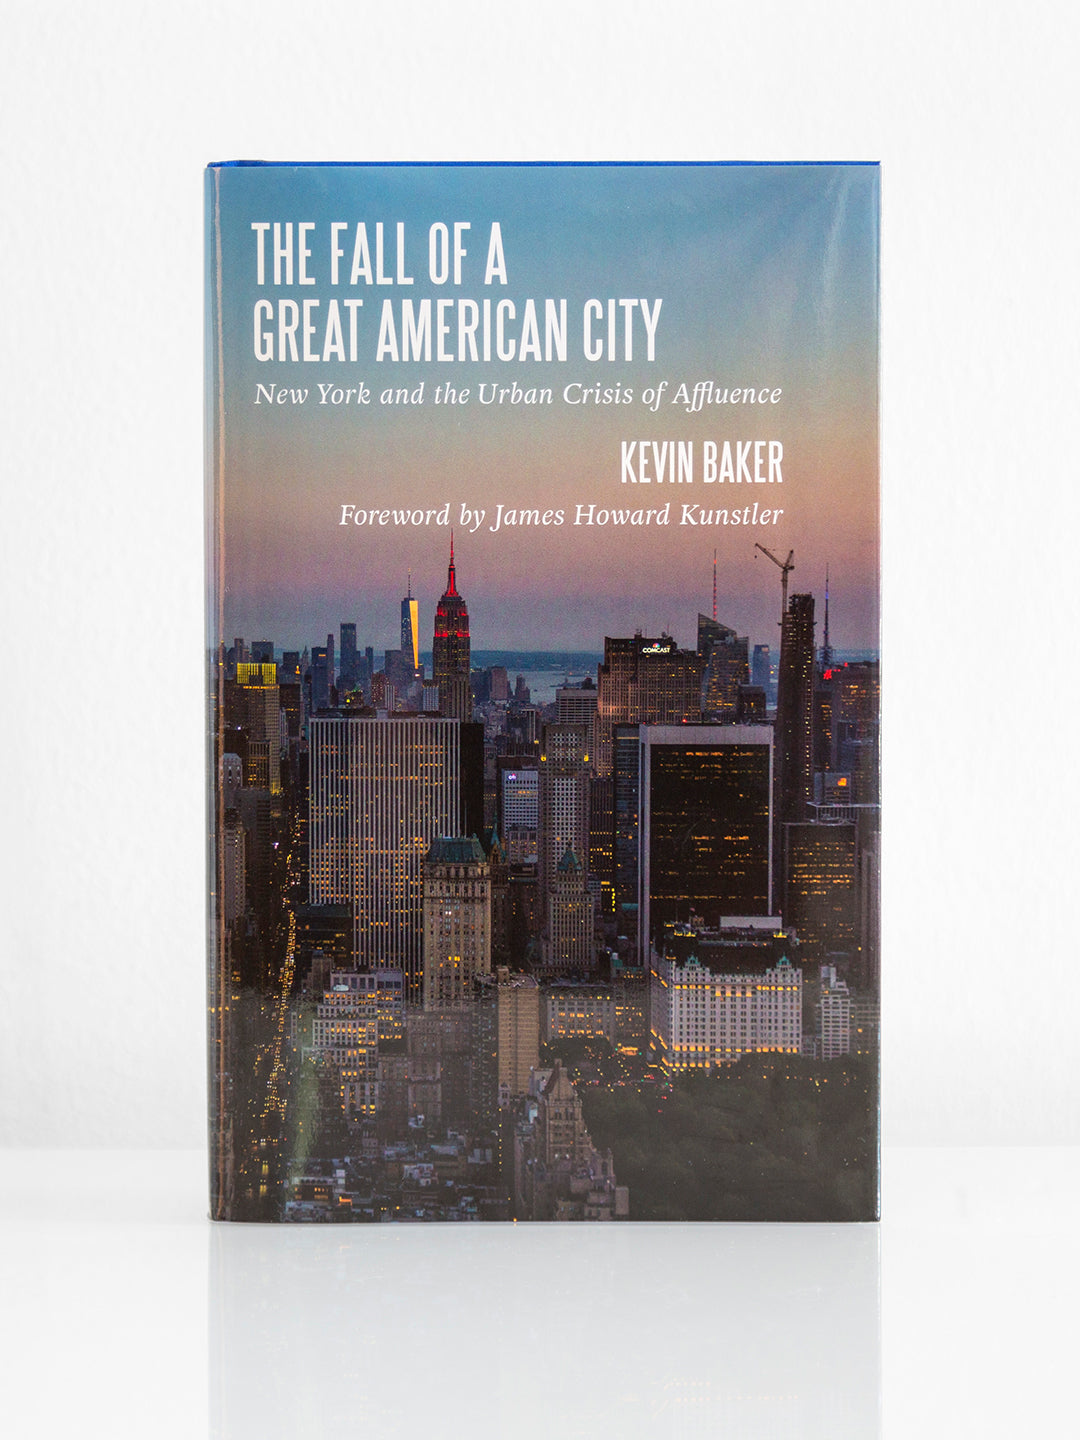 The Fall of a Great American City